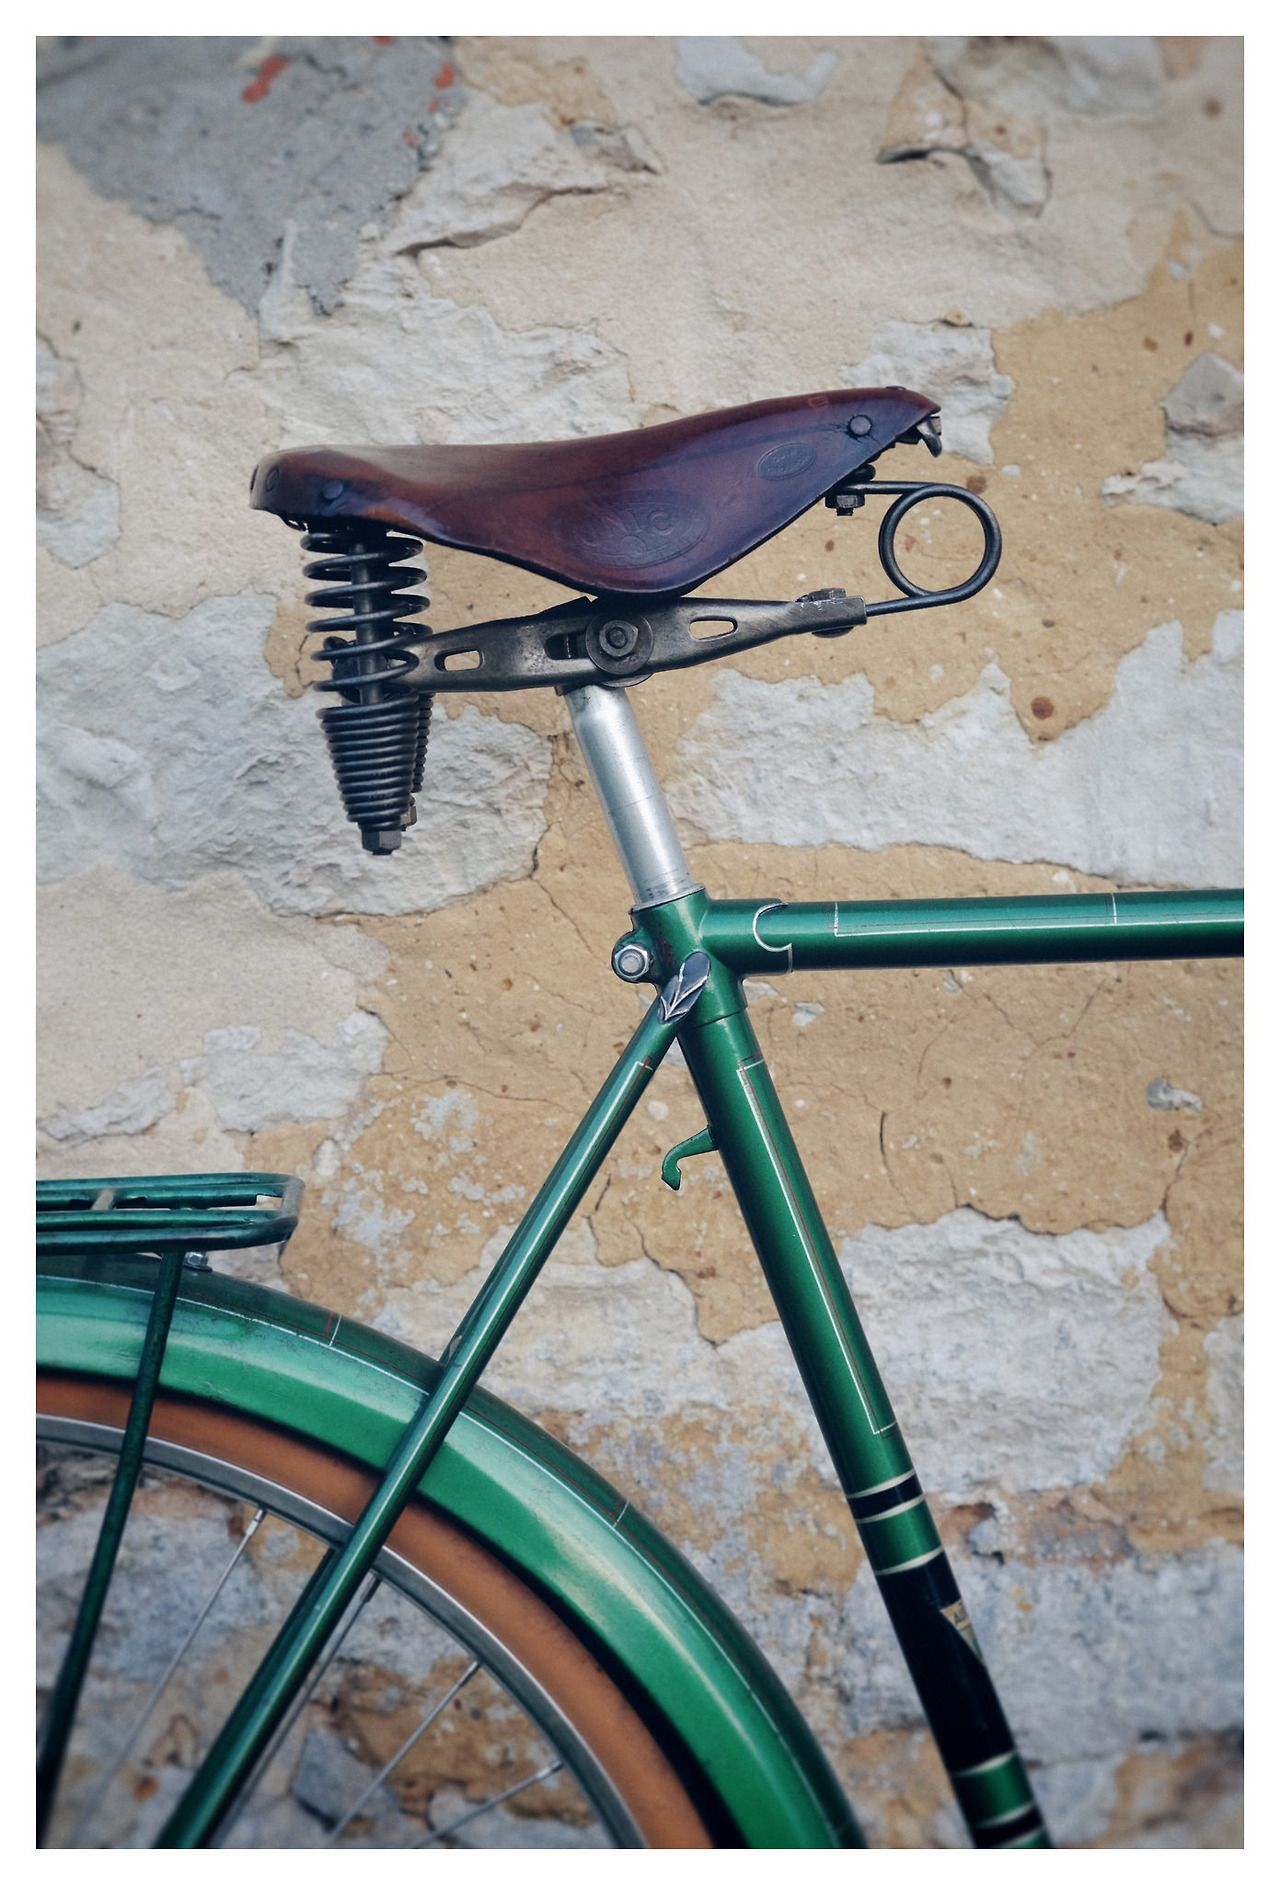 Classic Vintage Cycling Photo With Images Bike Design